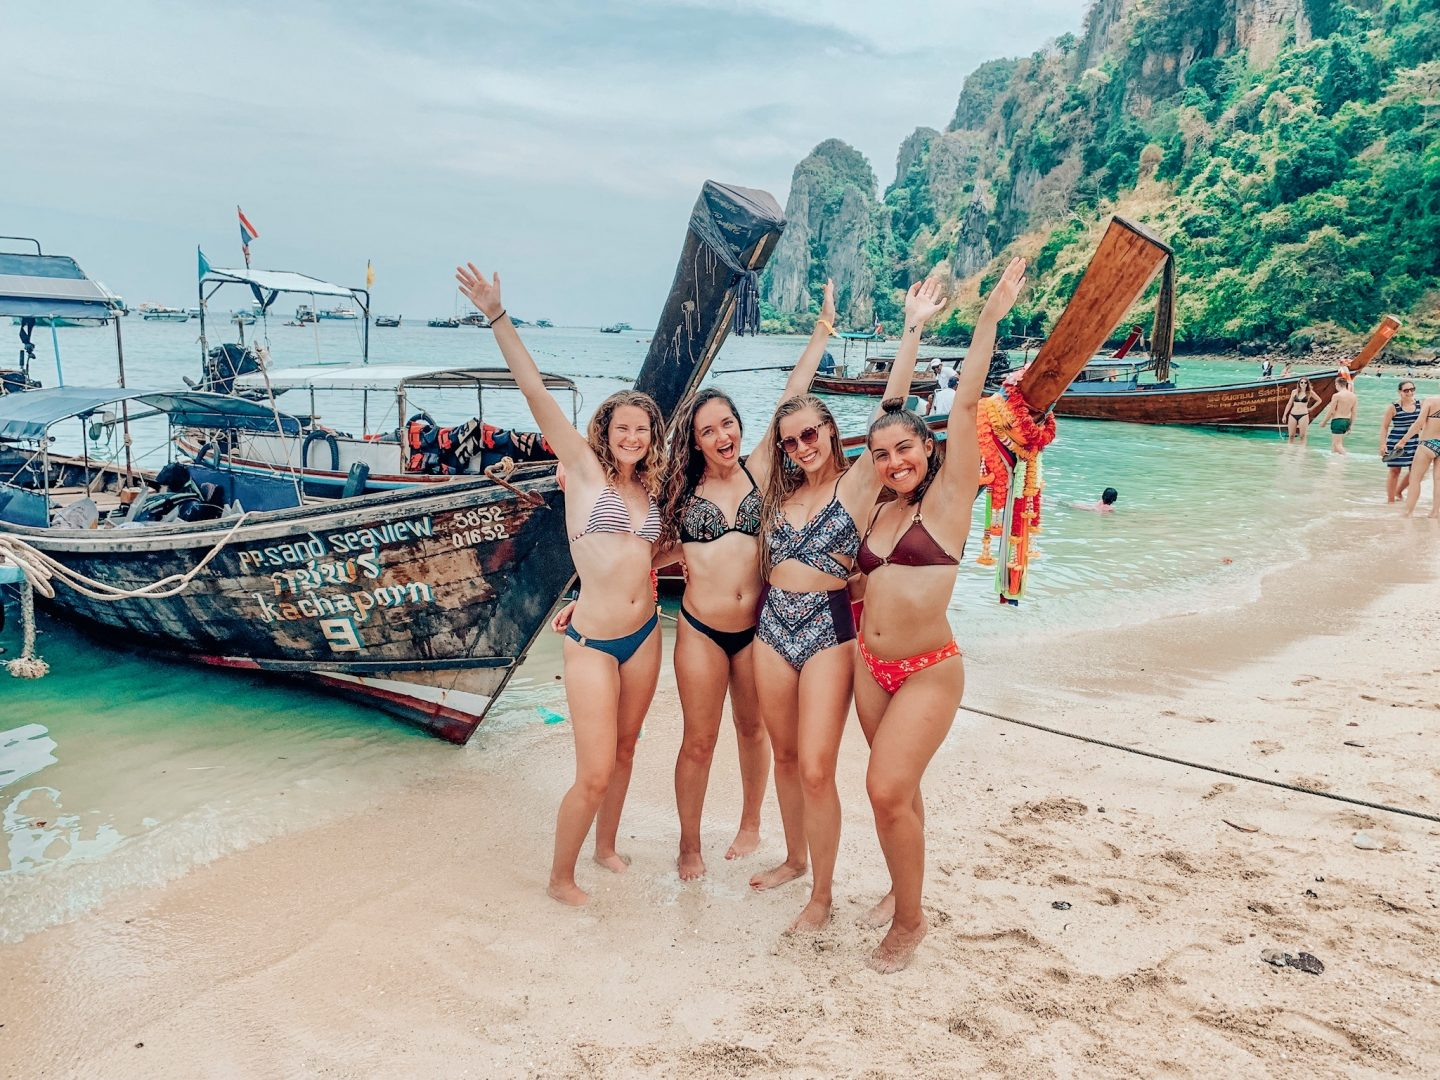 Enjoying the beach during our day trip to the Phi Phi Islands!